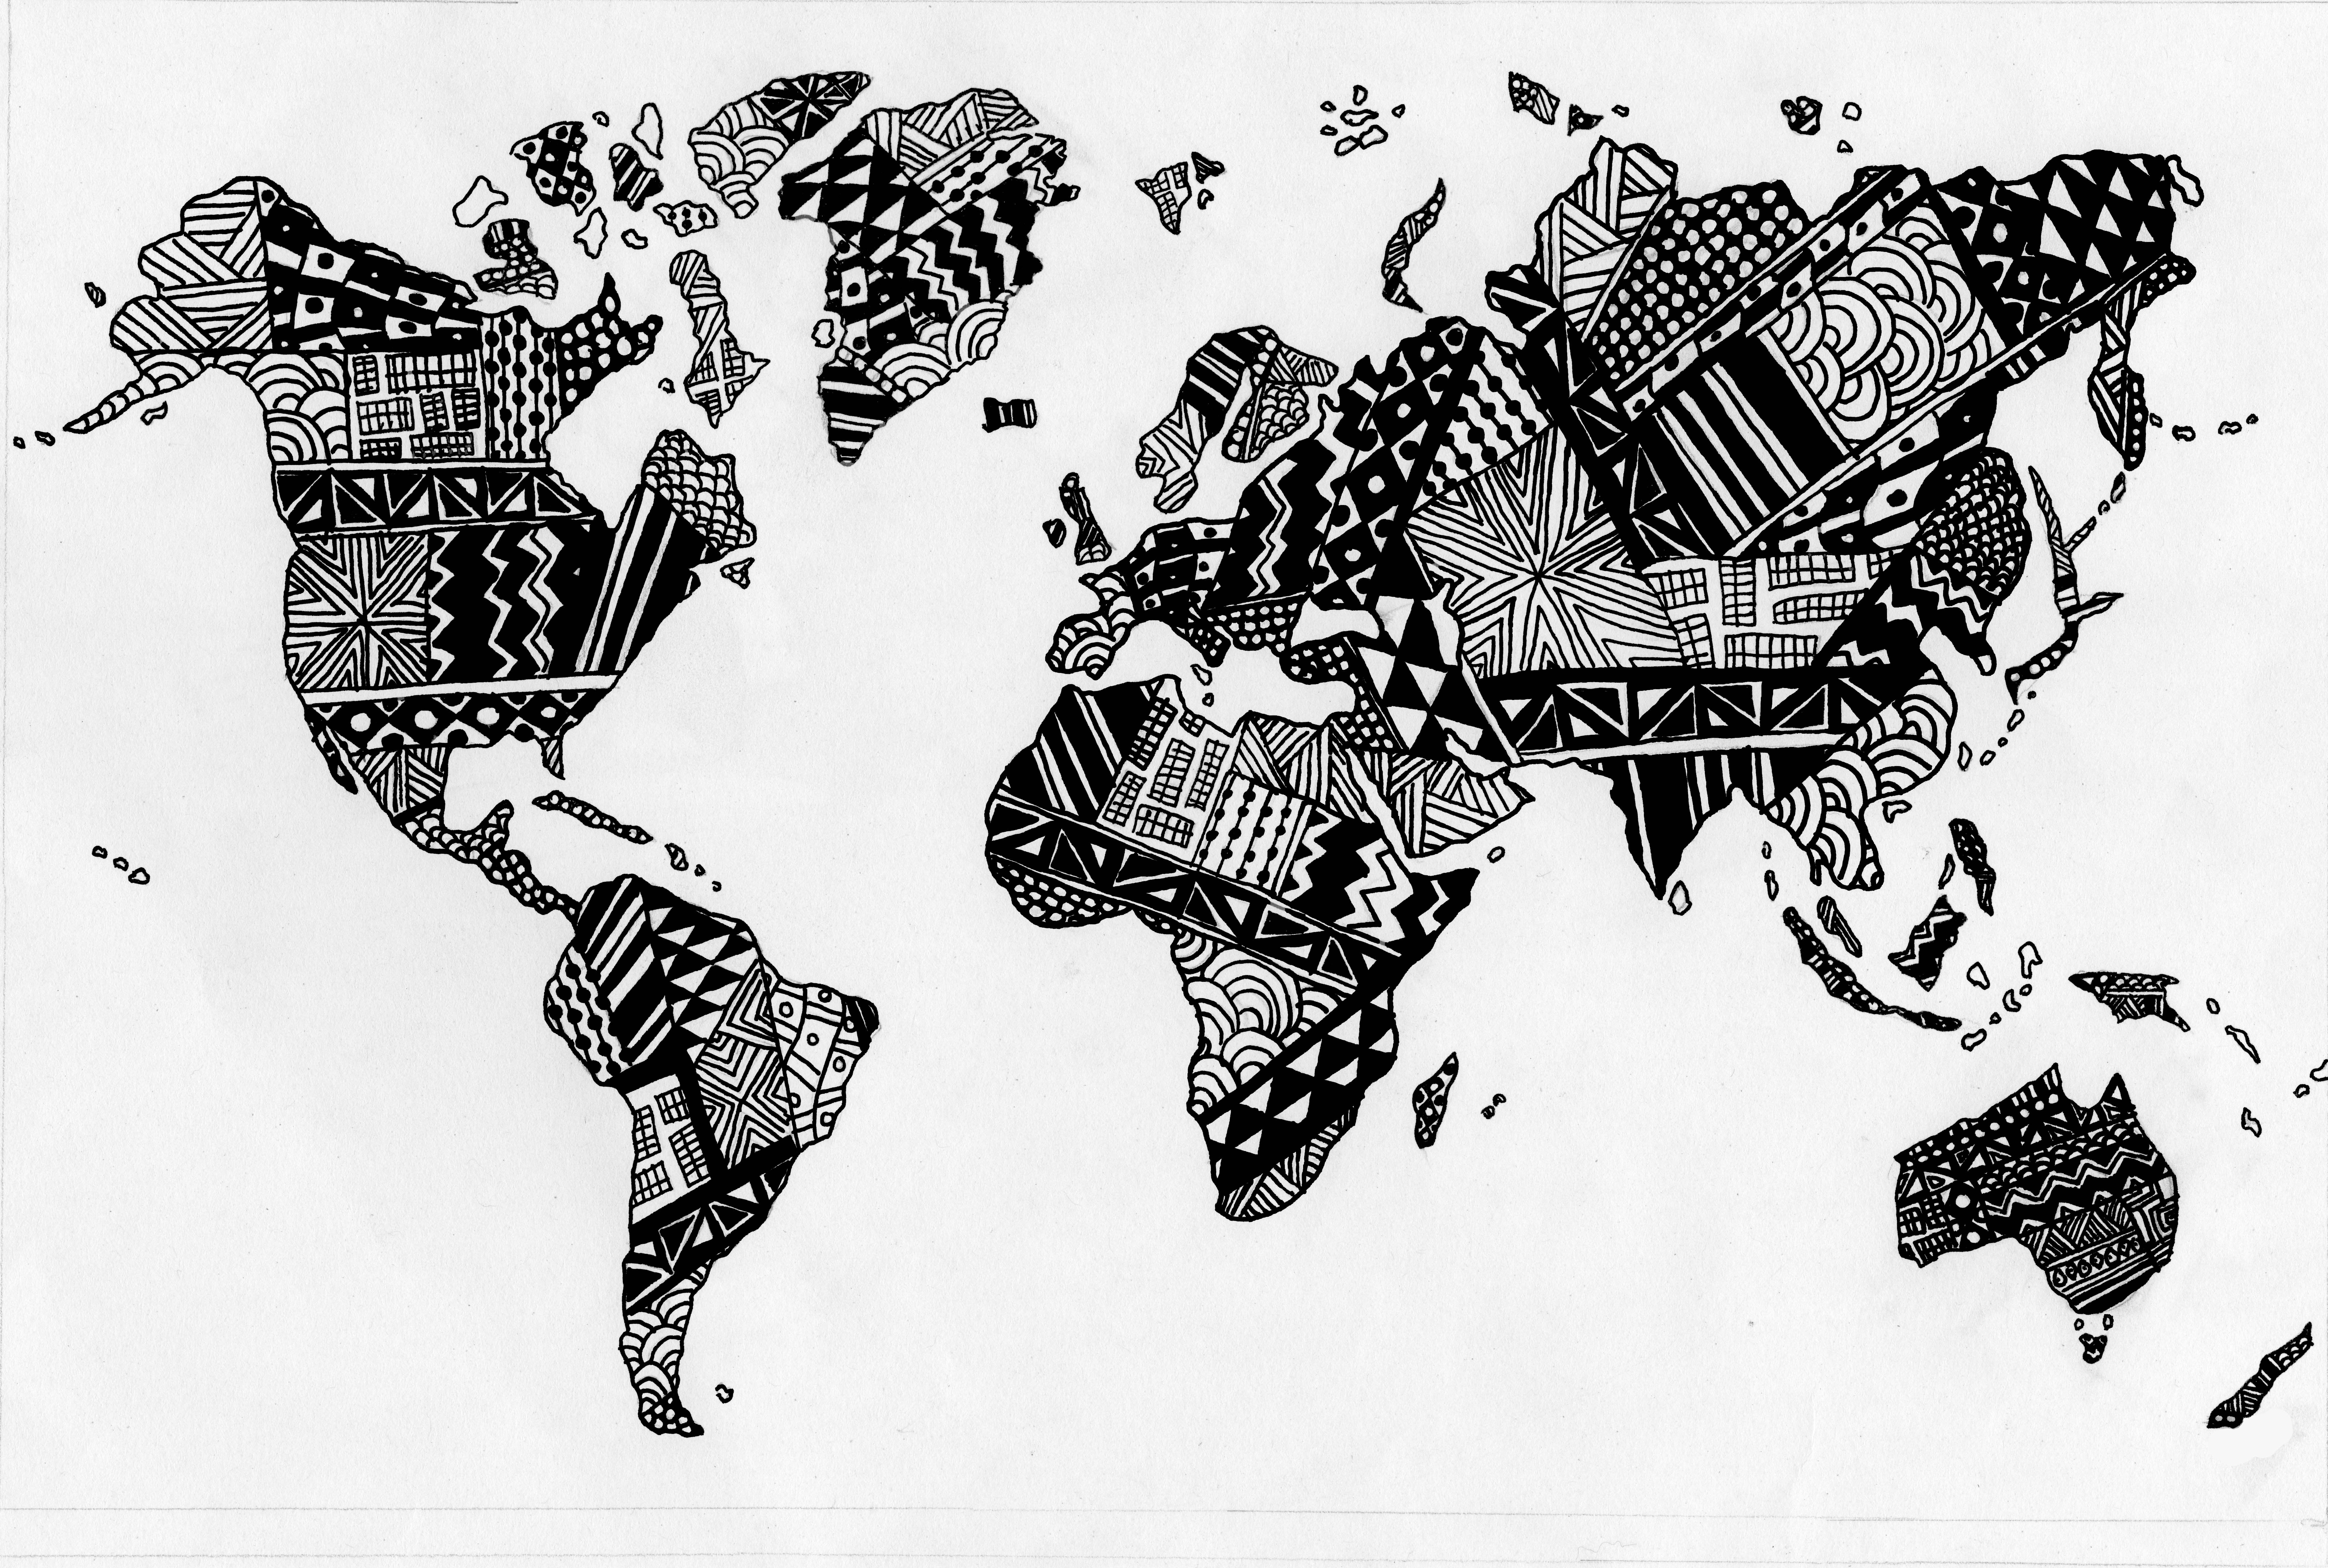 Hand Drawn Zen World Map © How to draw hands, Drawings, Map